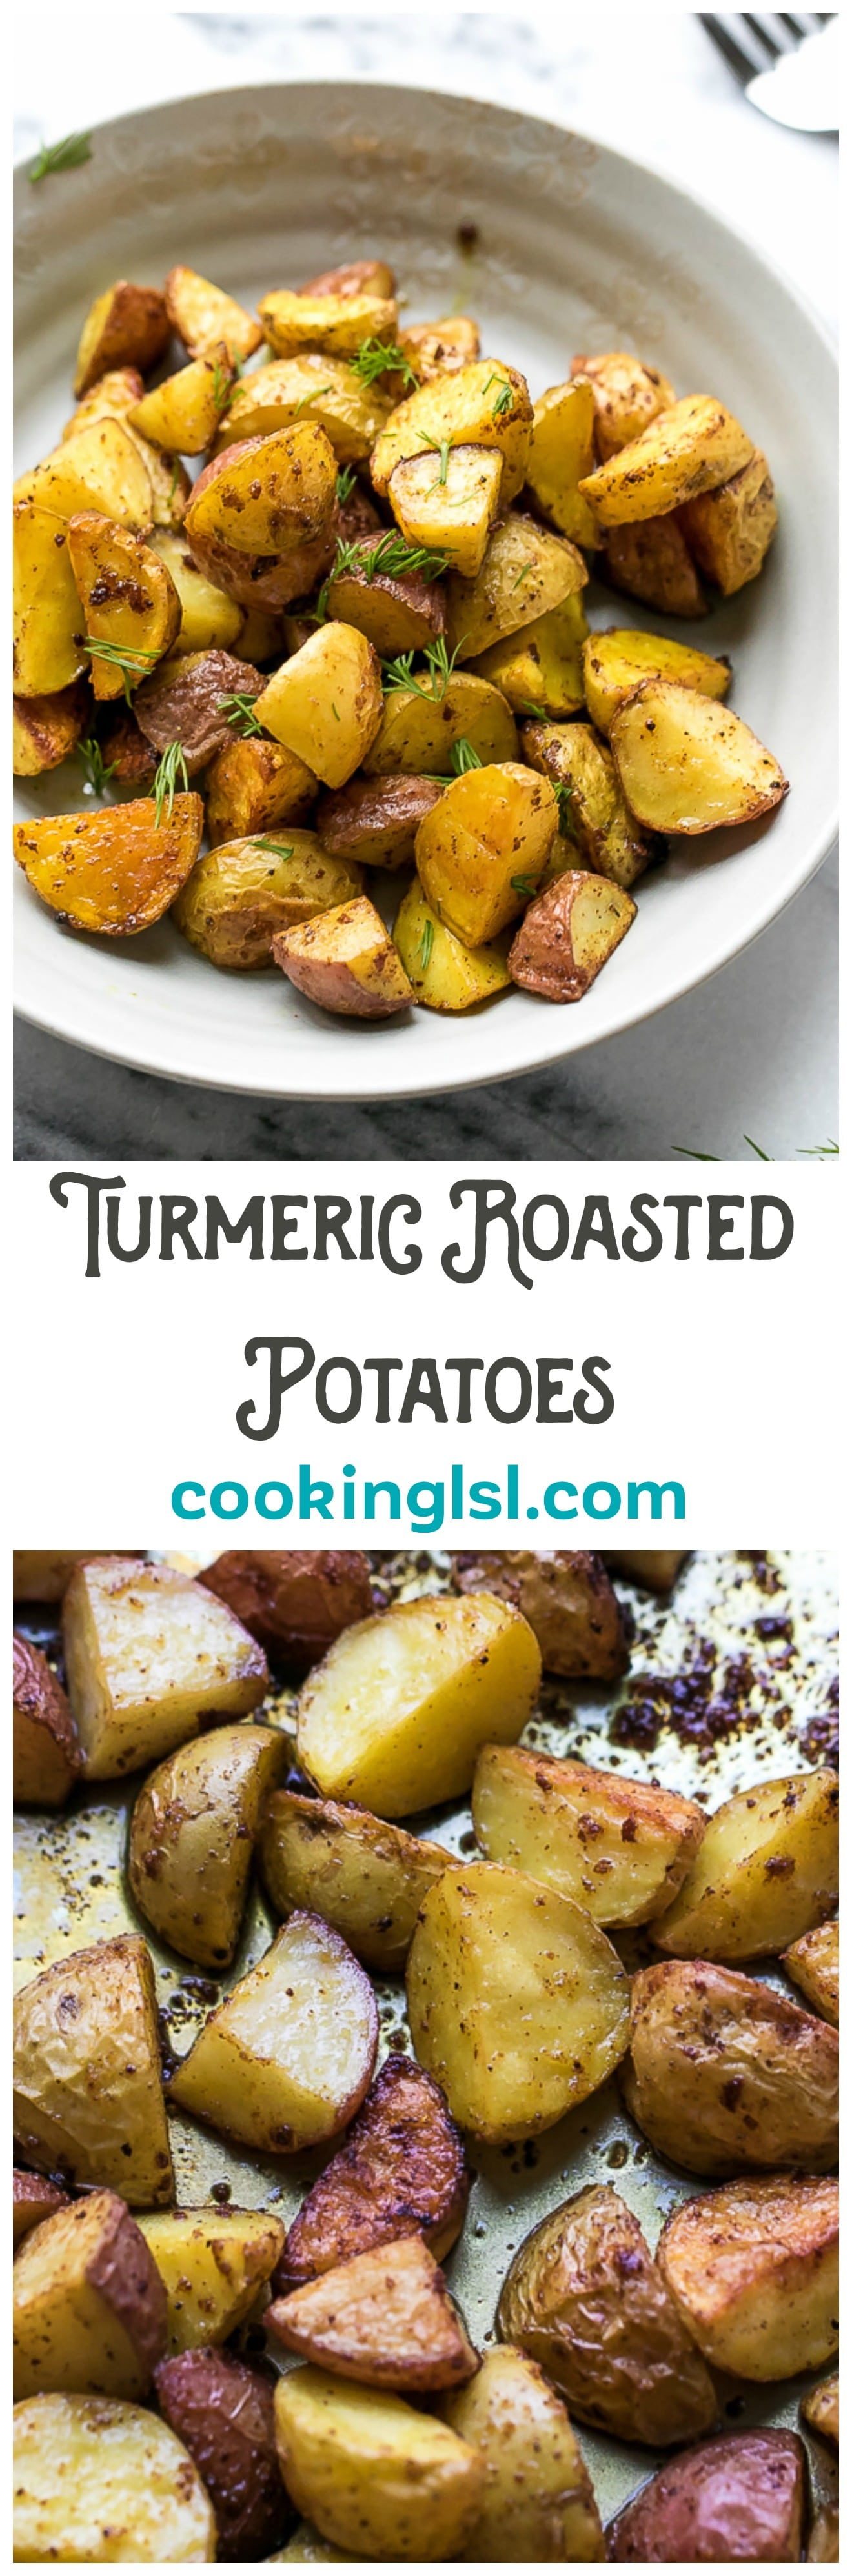 Turmeric Roasted Potatoes Recipe - very easy to make, crispy and flavorful. These potatoes are great for a side dish or an appetizer with your favorite dipping sauce.